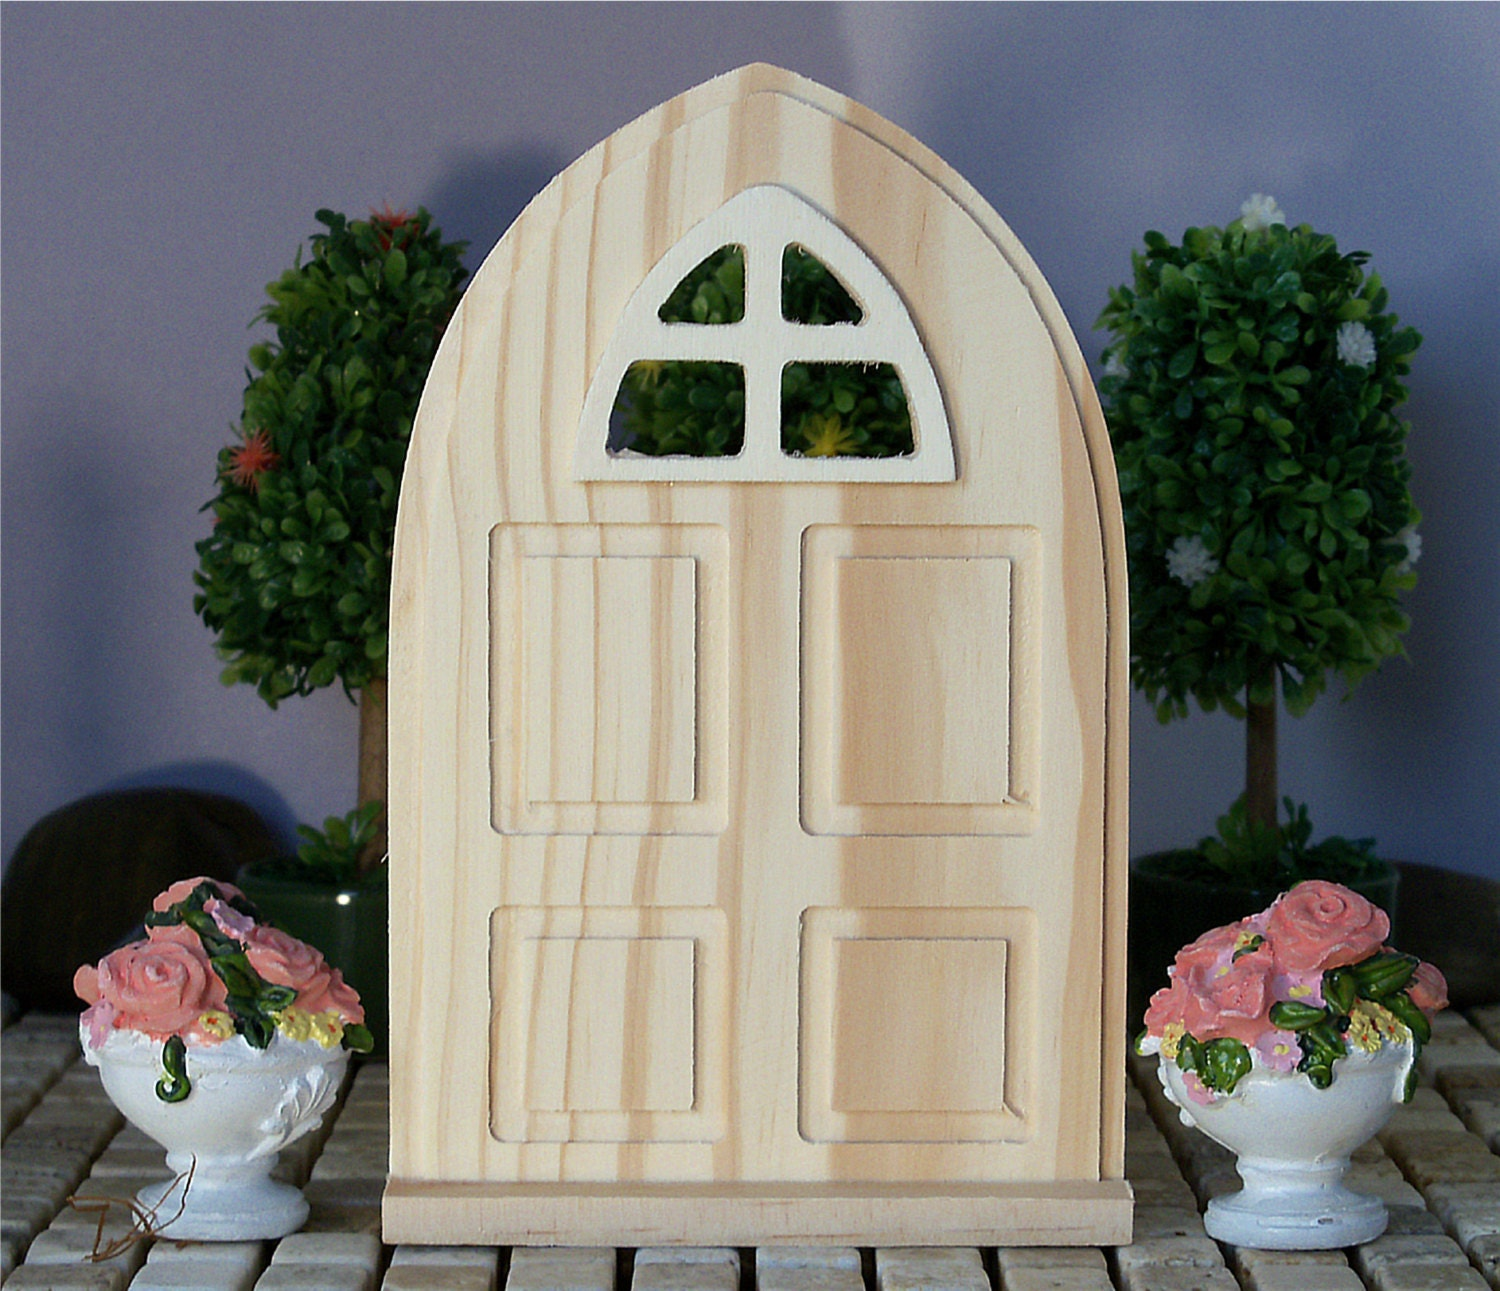 Wood Arch Decorations Ideas: Fairy Garden Door Wood Panel Window Arch DIY Unfinished